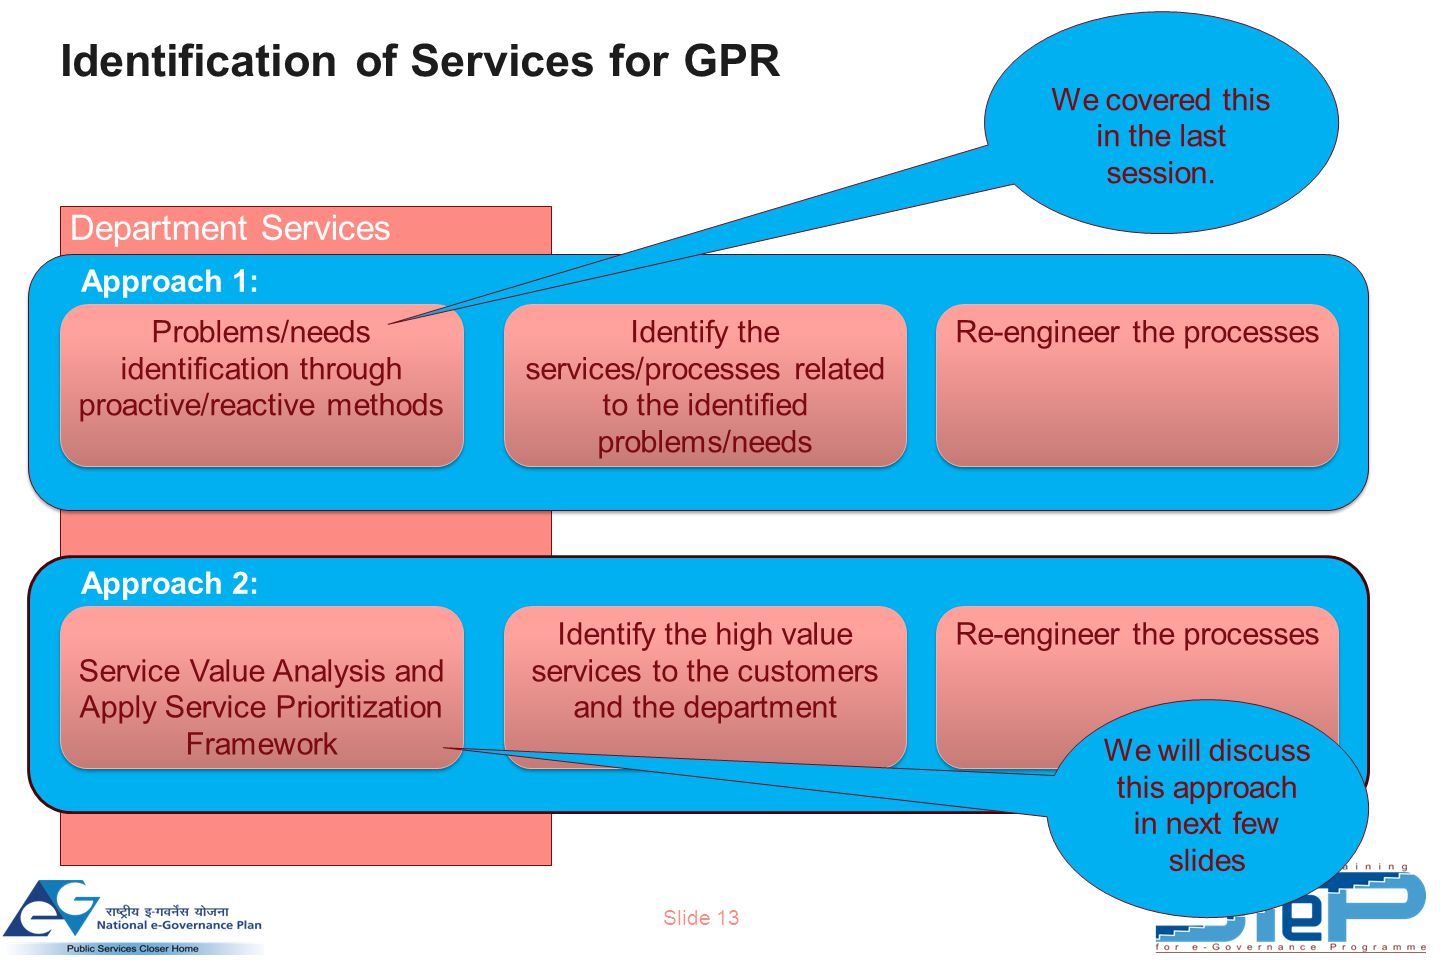 Slide 13 Identification of Services for GPR Department Services Problems/needs identification through proactive/reactive methods Identify the services/processes related to the identified problems/needs Re-engineer the processes Approach 1: Service Value Analysis and Apply Service Prioritization Framework Identify the high value services to the customers and the department Re-engineer the processes Approach 2: We covered this in the last session.